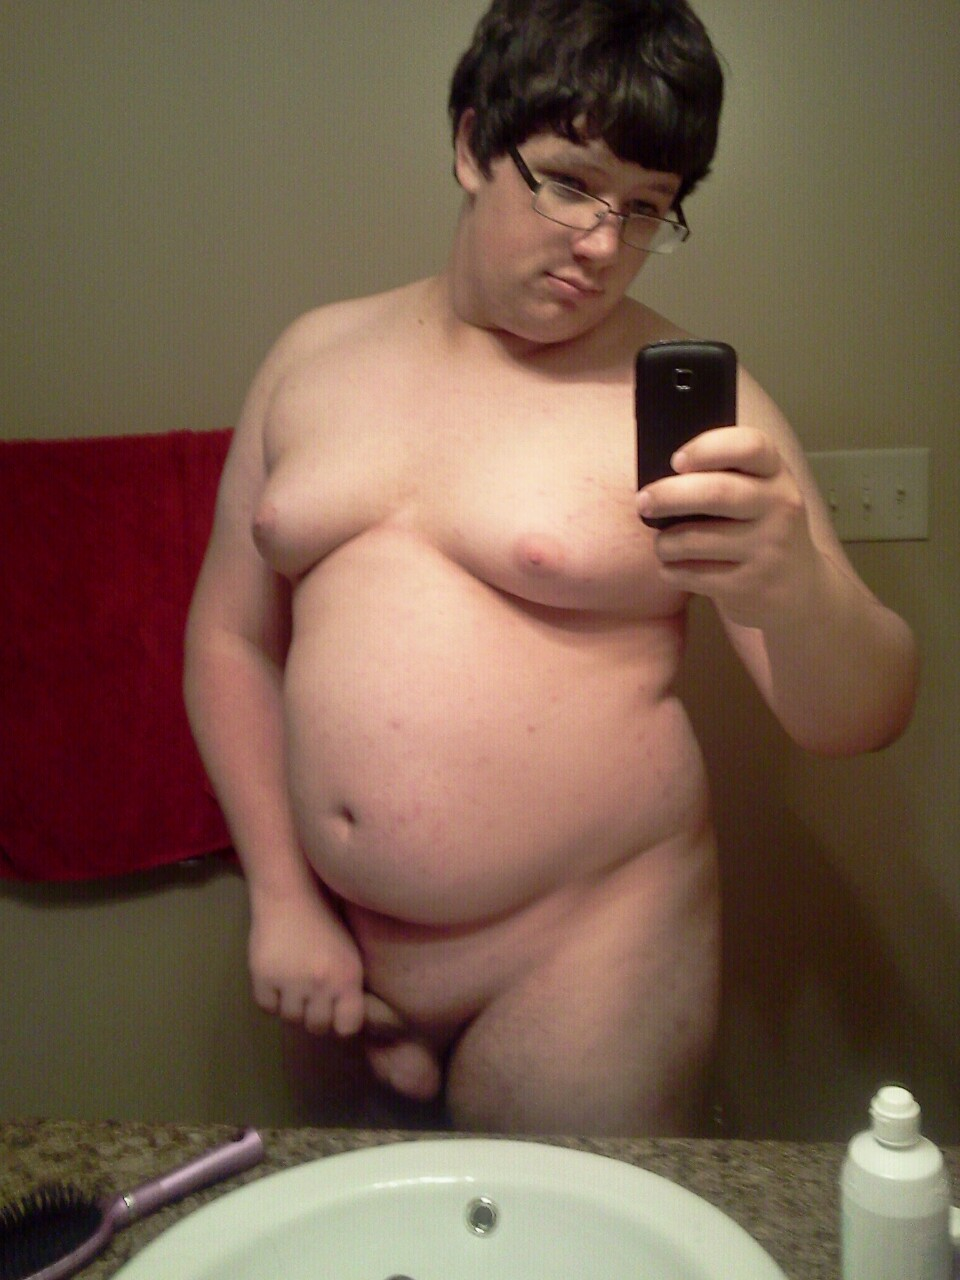 Boy fat butt naked